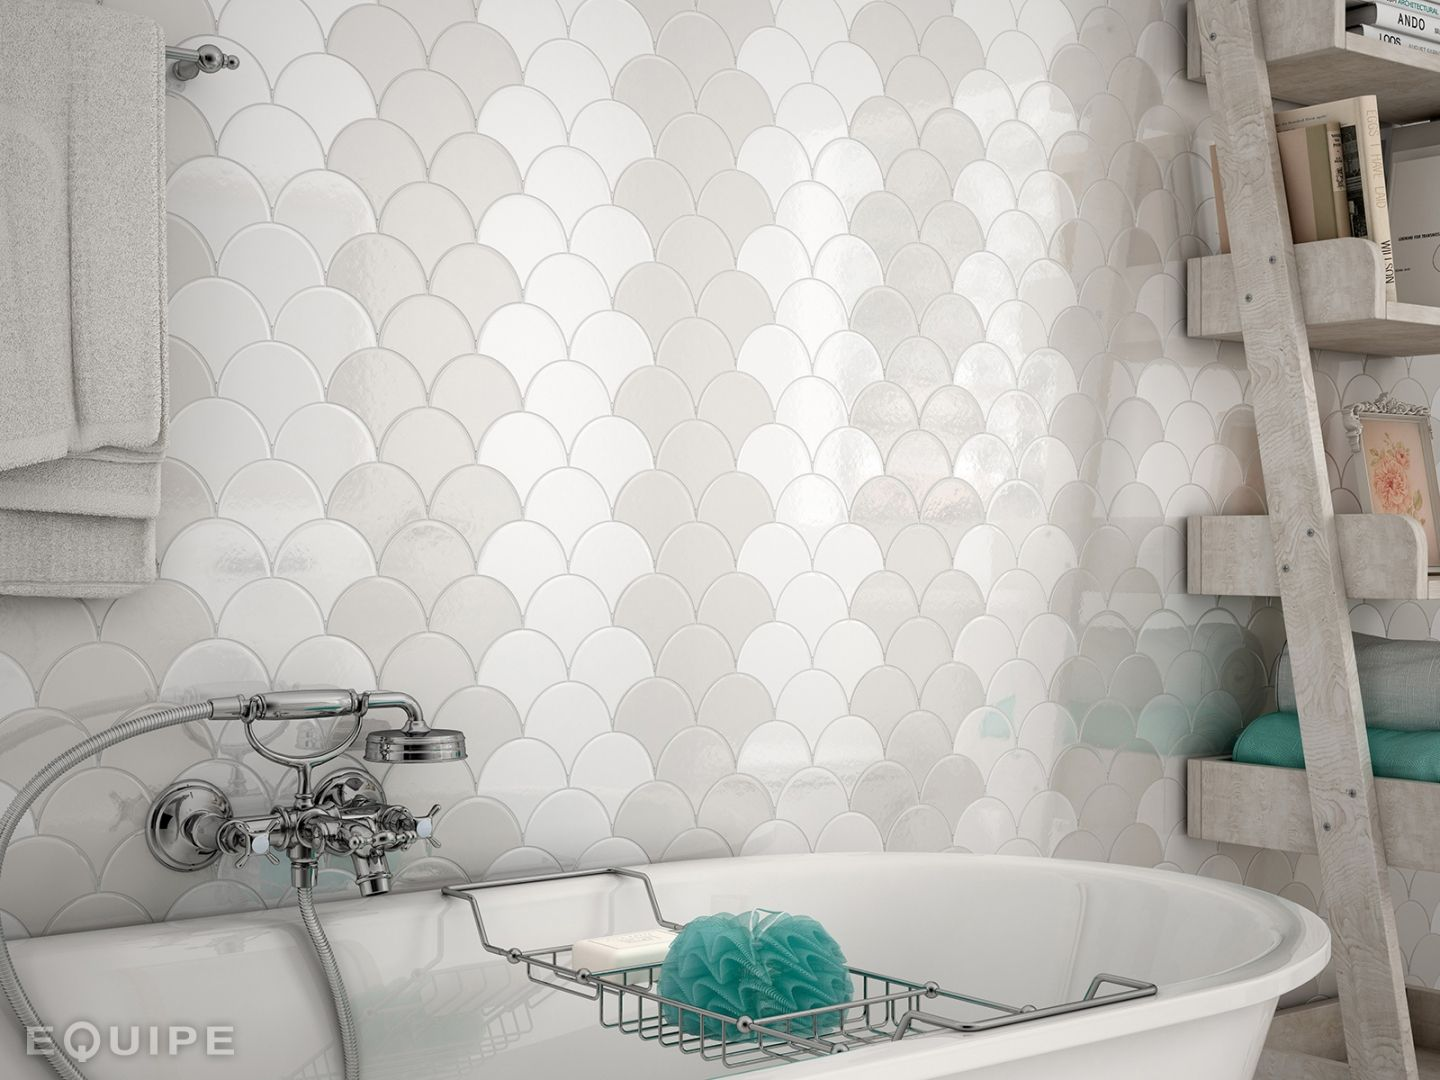 Fan Shaped Fish Scale Mosaic Tiles Fish Scale Tiles Also Known As Fan Shaped Or Scallop Shaped Tile Bathroom Design Fish Scale Tile Fish Scale Tile Bathroom